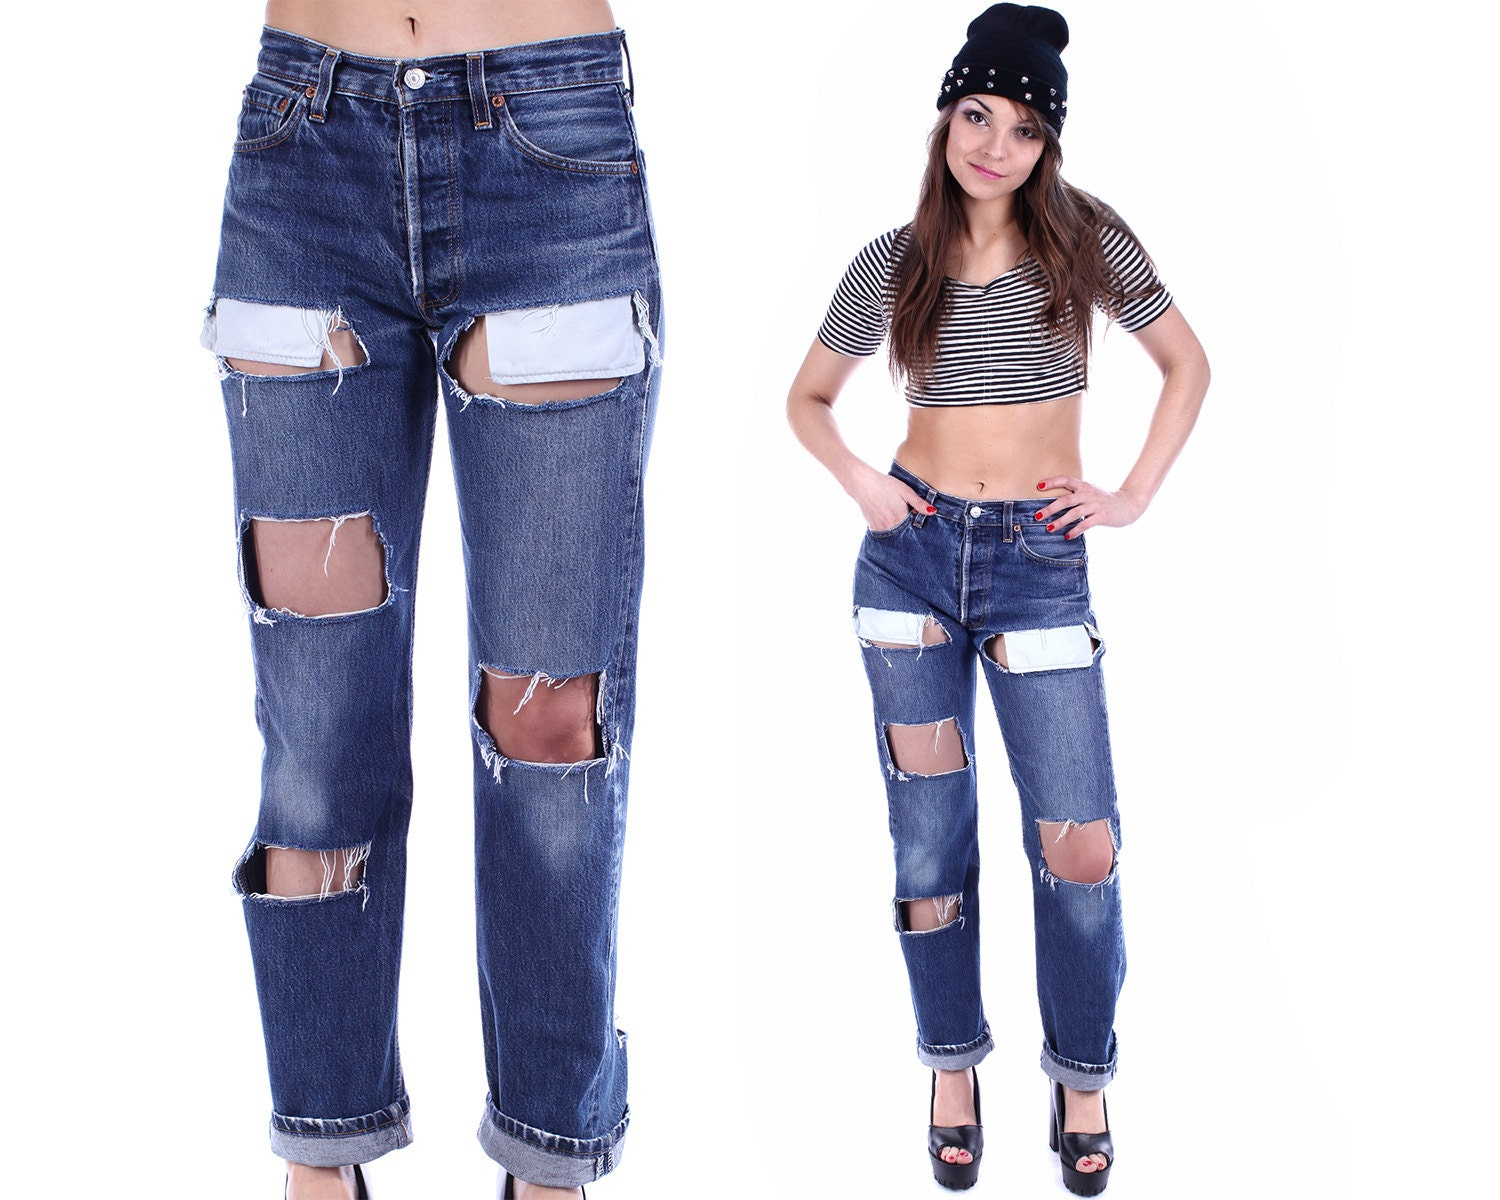 boyfriend jeans levis 501 high waisted ripped by betaapparel. Black Bedroom Furniture Sets. Home Design Ideas